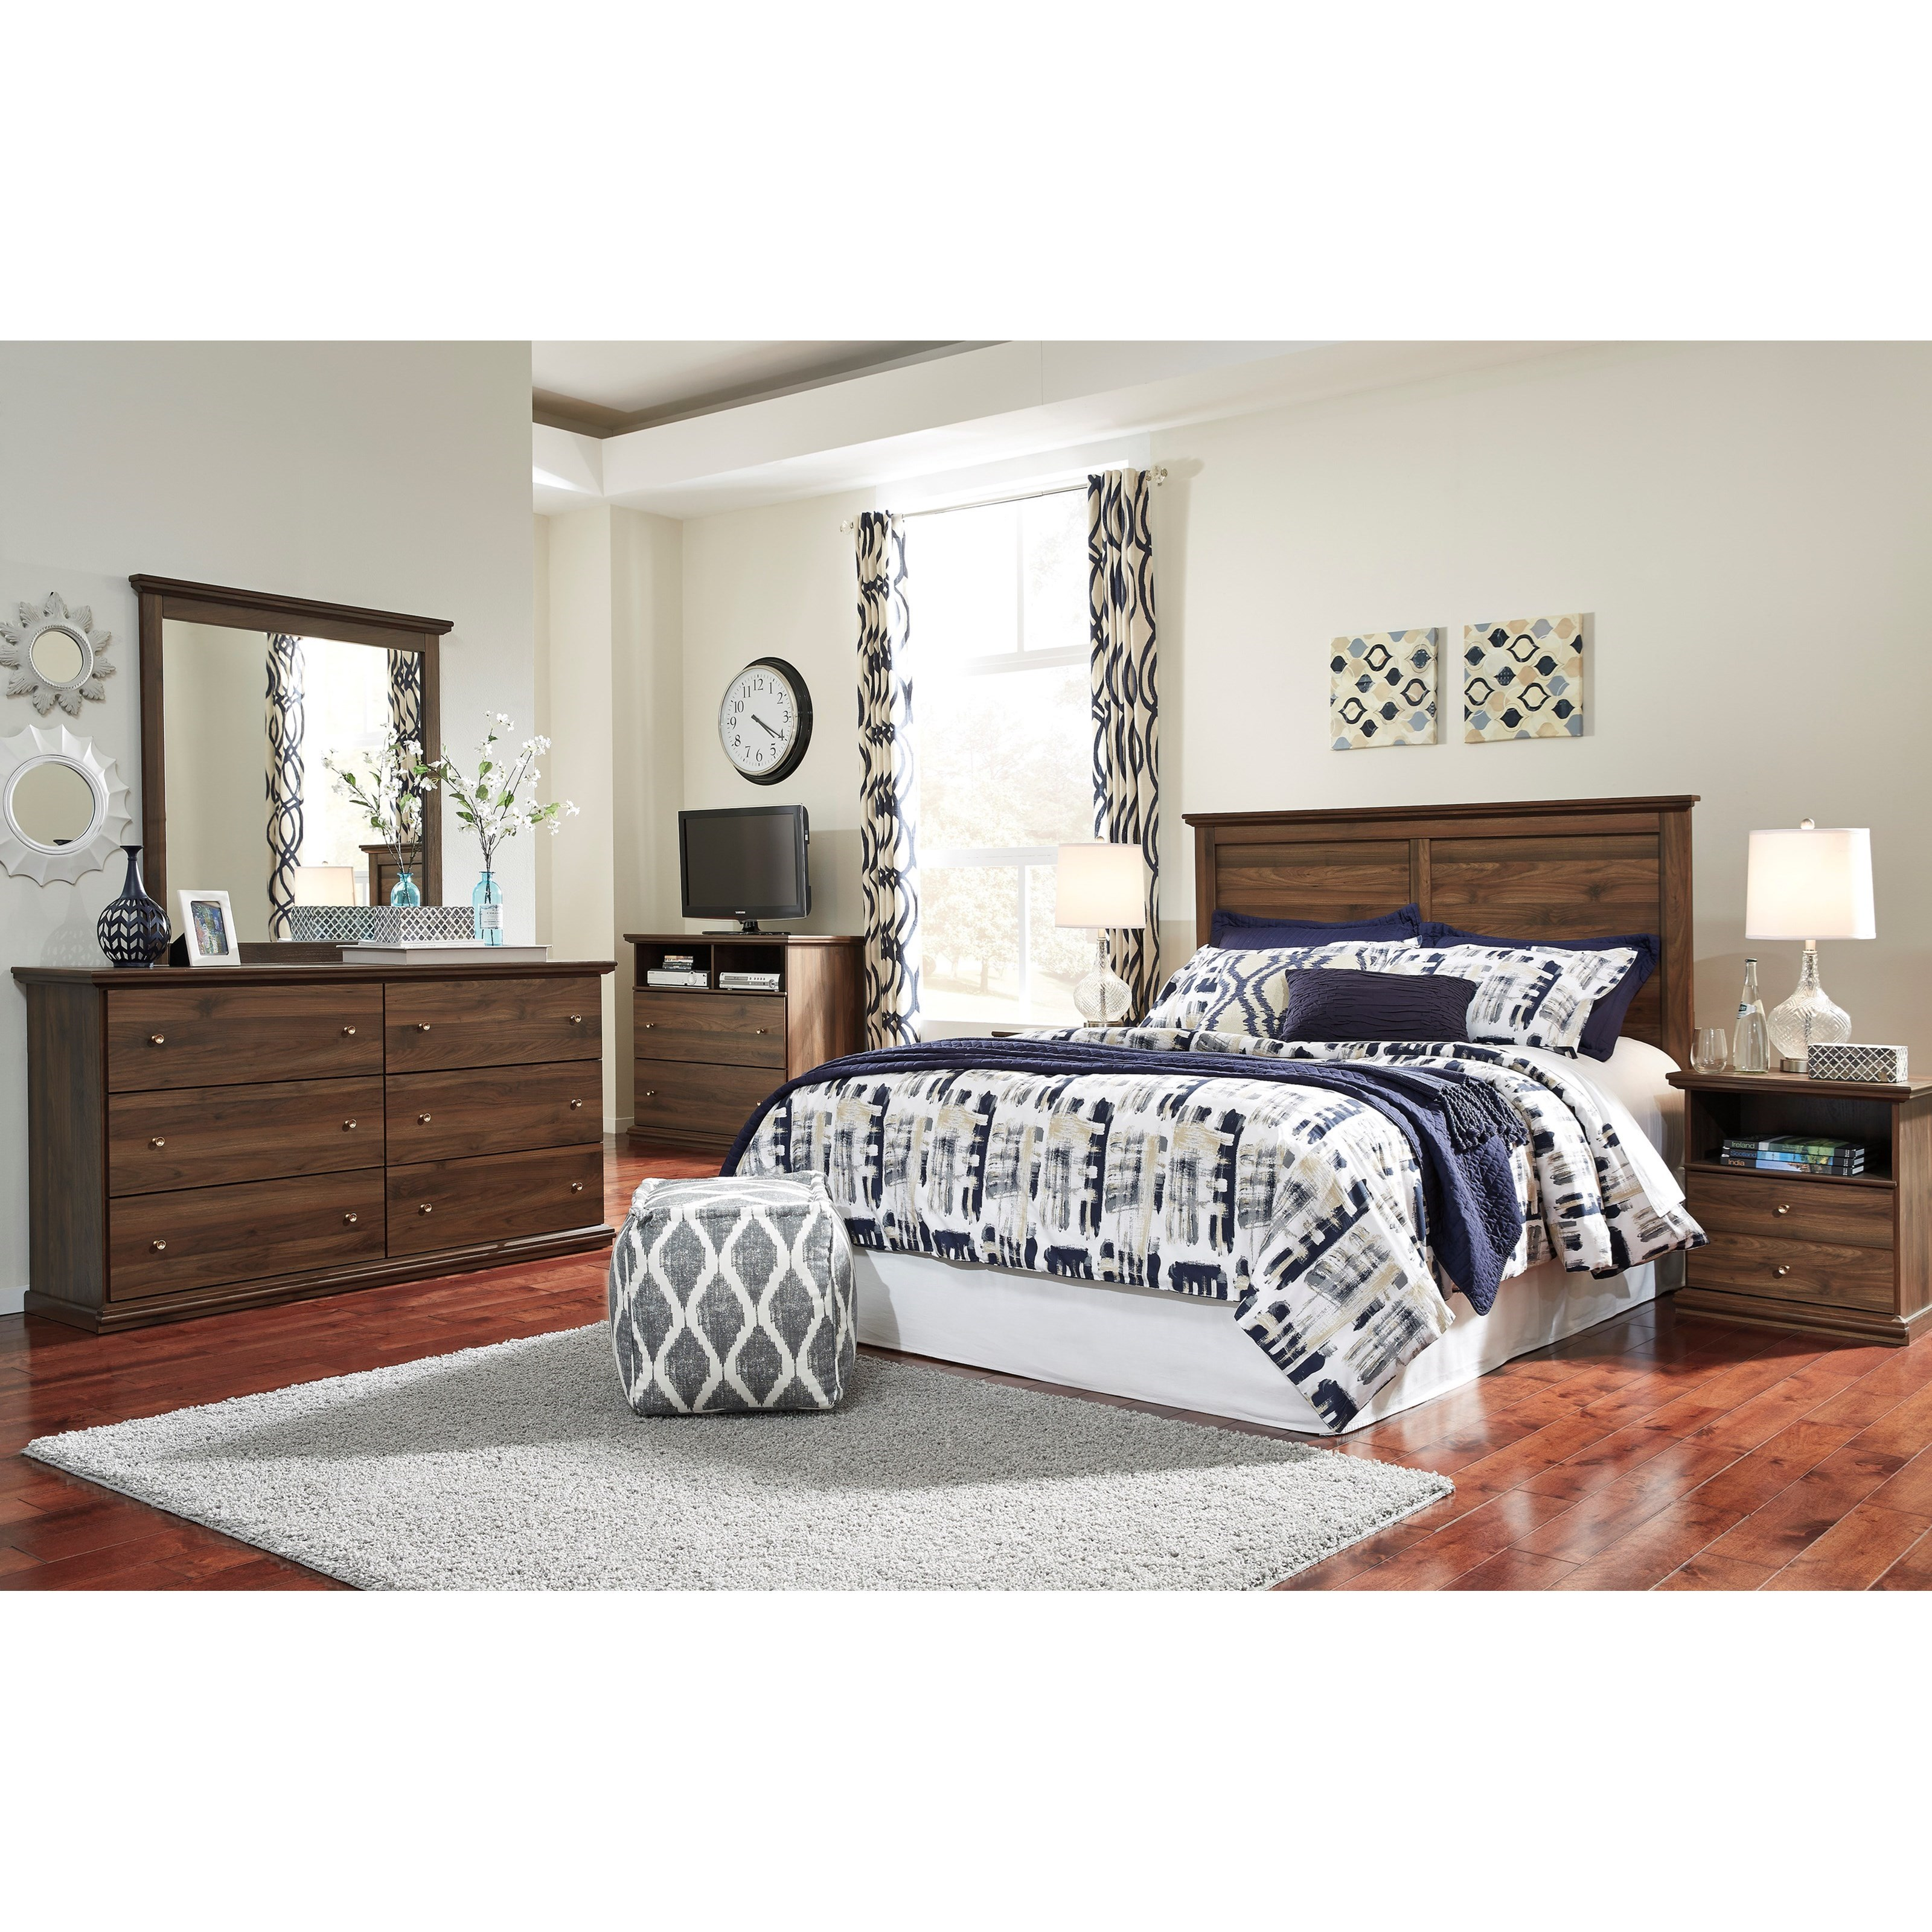 Signature Design by Ashley Burminson Queen Bedroom Group - Item Number: B135 Q Bedroom Group 3